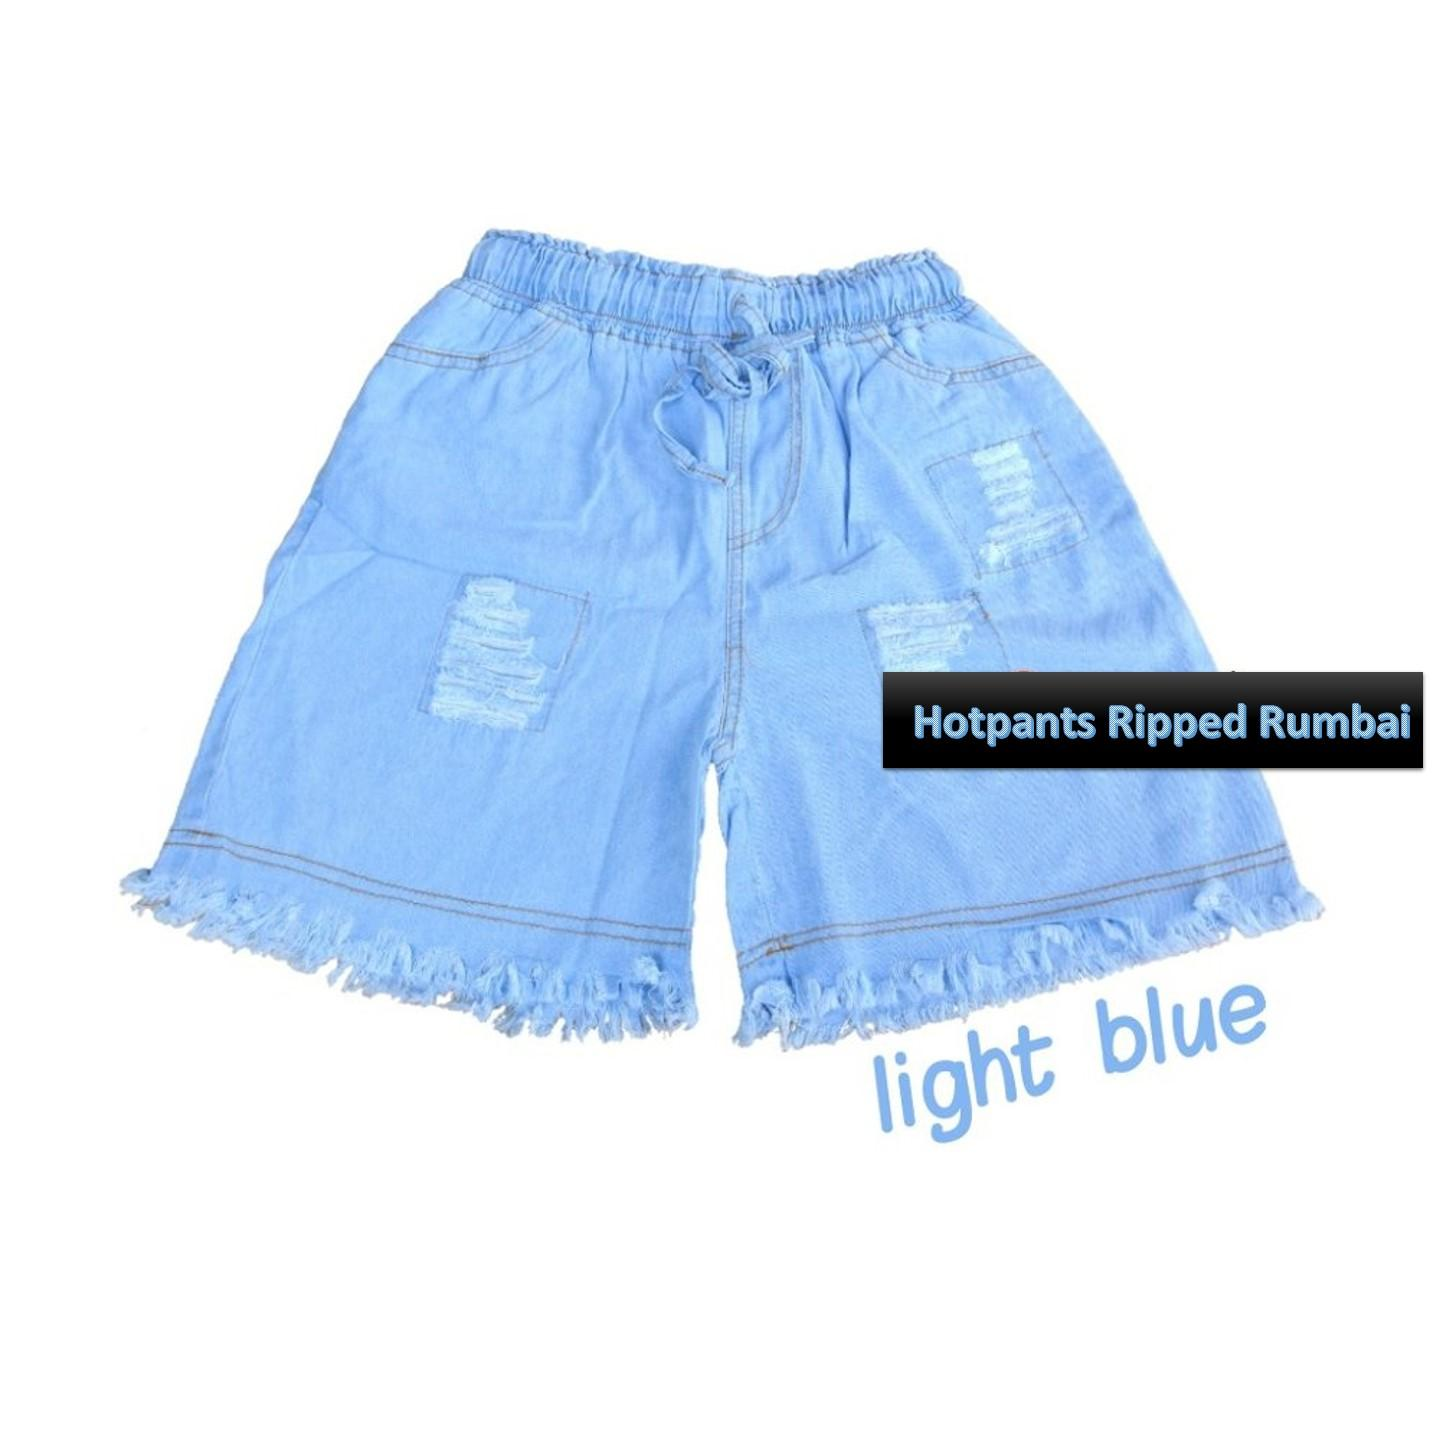 Baby Talk Club Celana Pendek Hotpants Ripped Rumbai Jeans Wanita Celana Jeans Wanita Fashionable Women